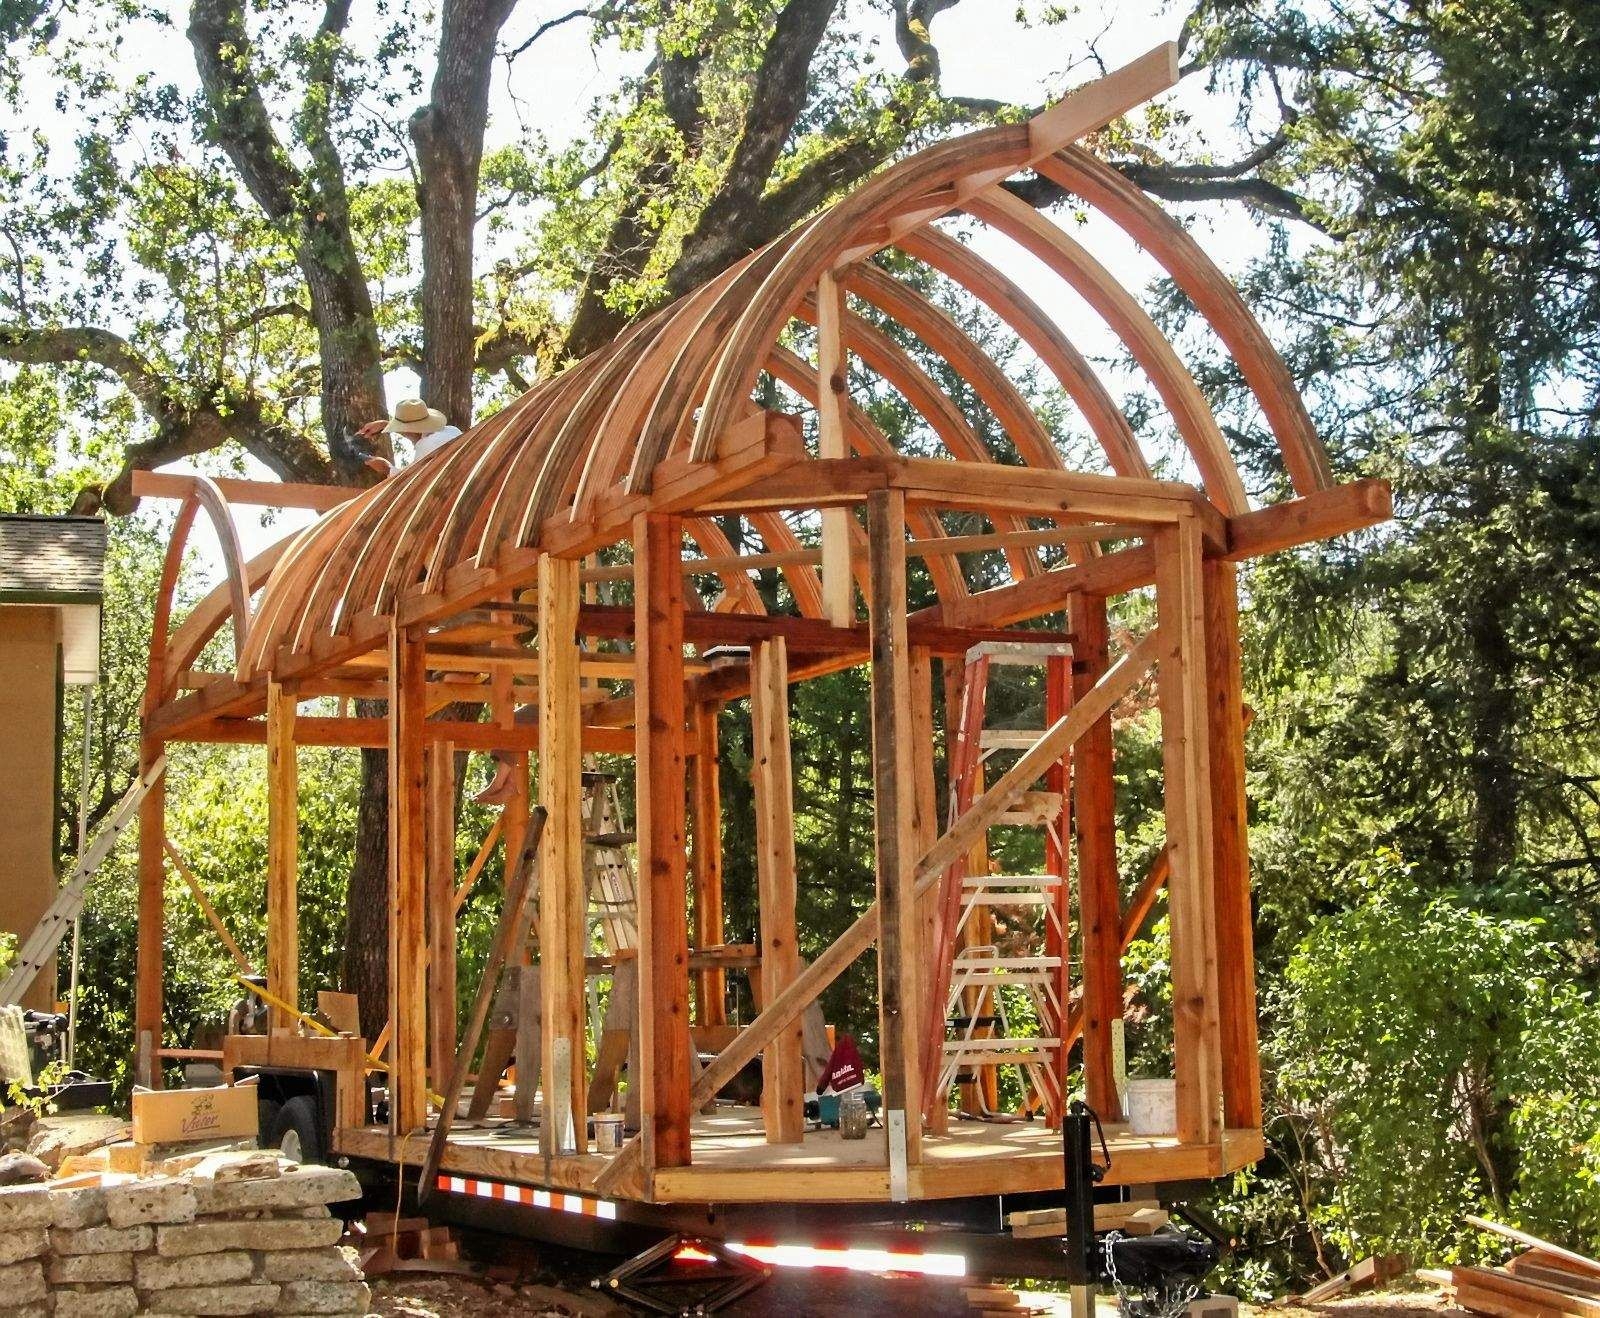 Curved roof tiny house under construction incredible for Tiny home construction plans